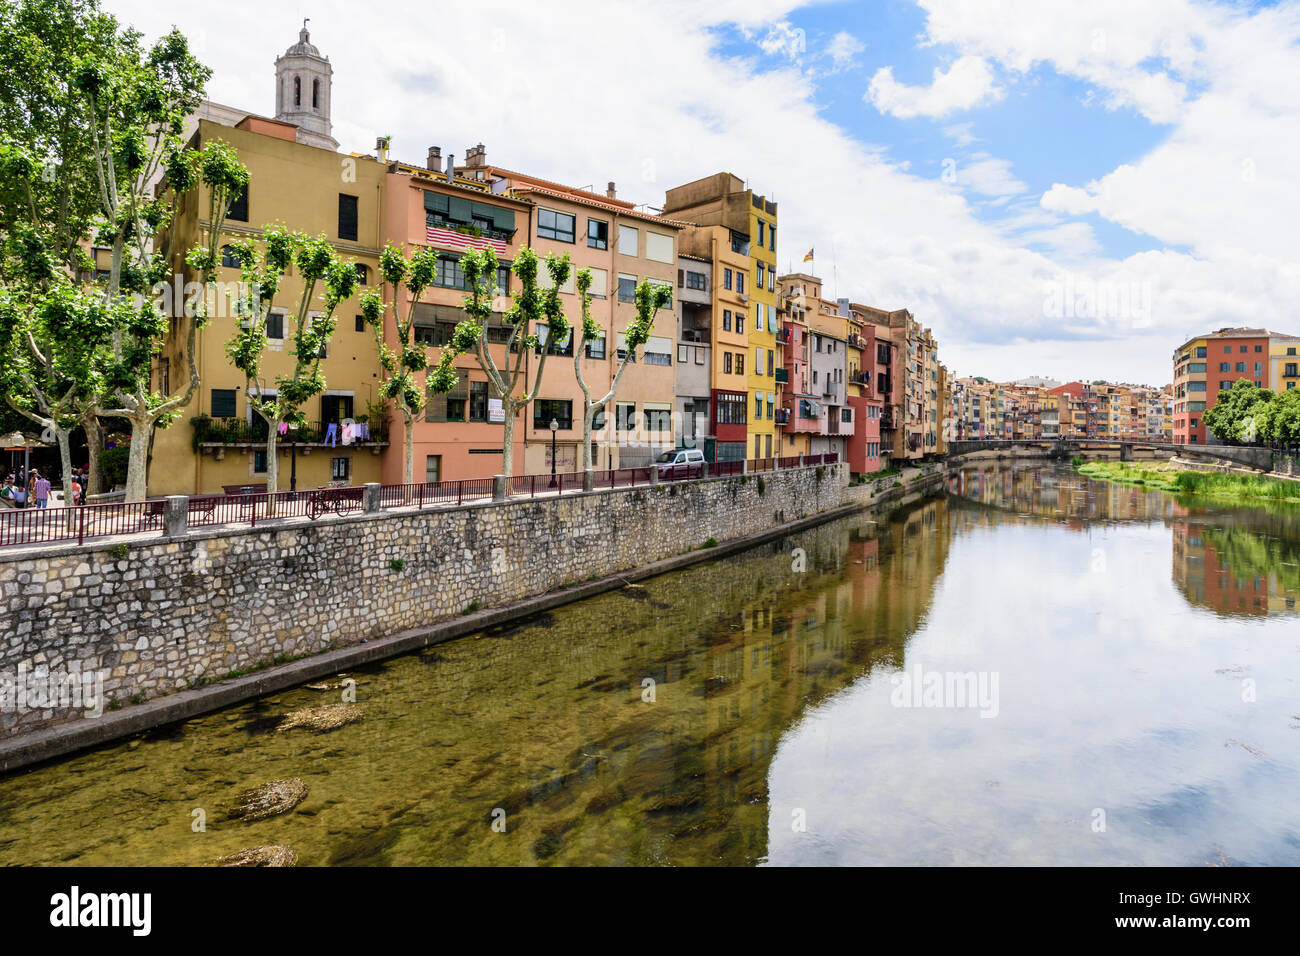 Colourful houses along the banks River Onyar in the old town of Girona, Catalonia, Spain Stock Photo